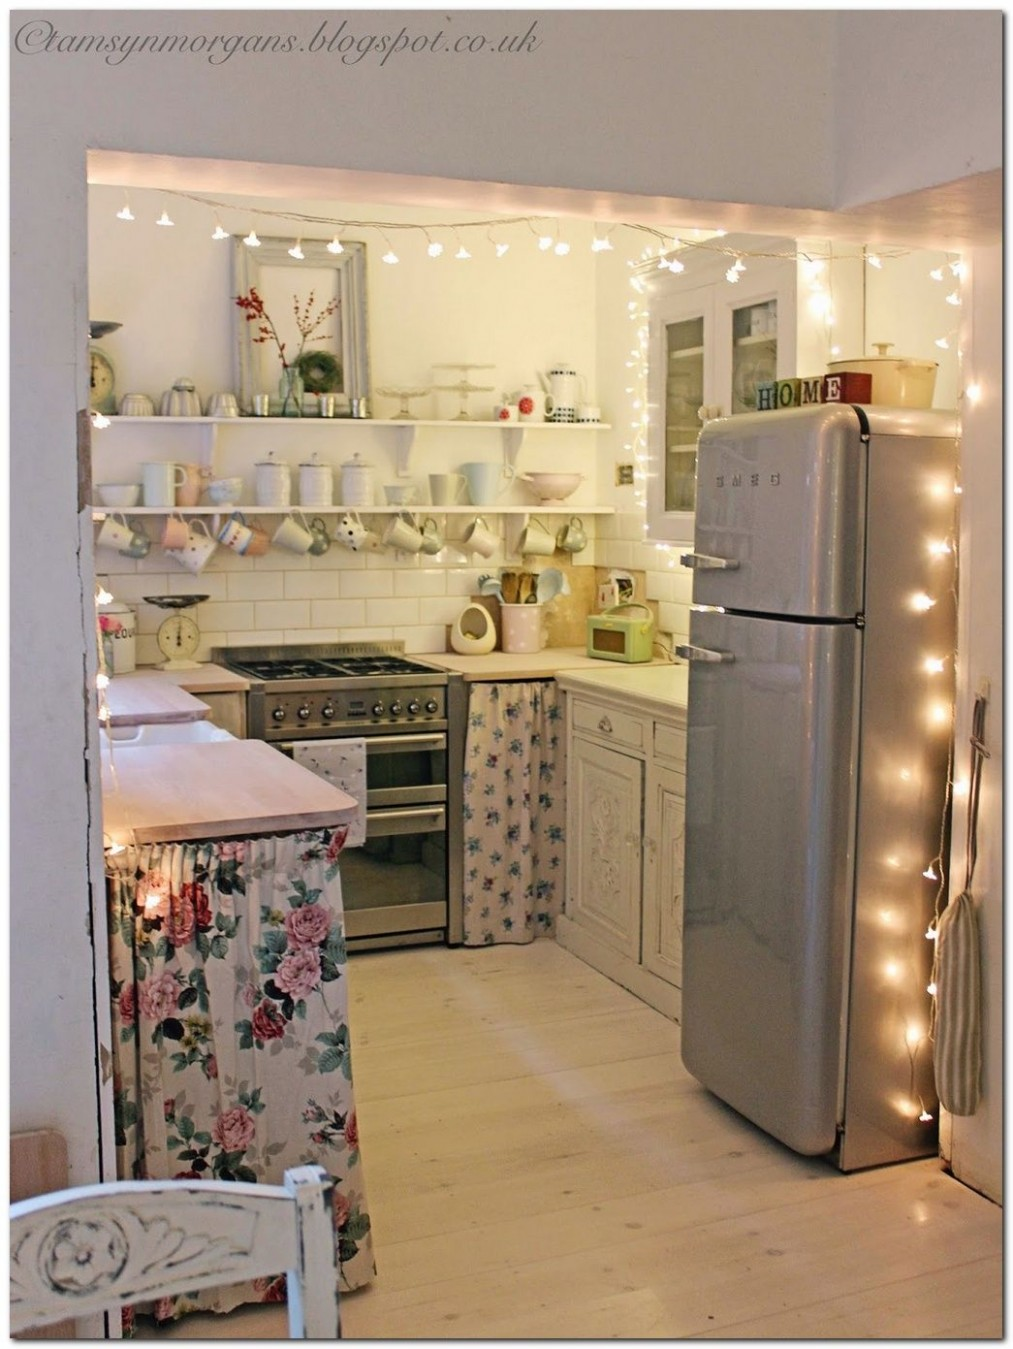 10+ Ideas to Decorate Small Apartment on a Budget - The Urban  - Apartment Kitchen Decorating Ideas On A Budget